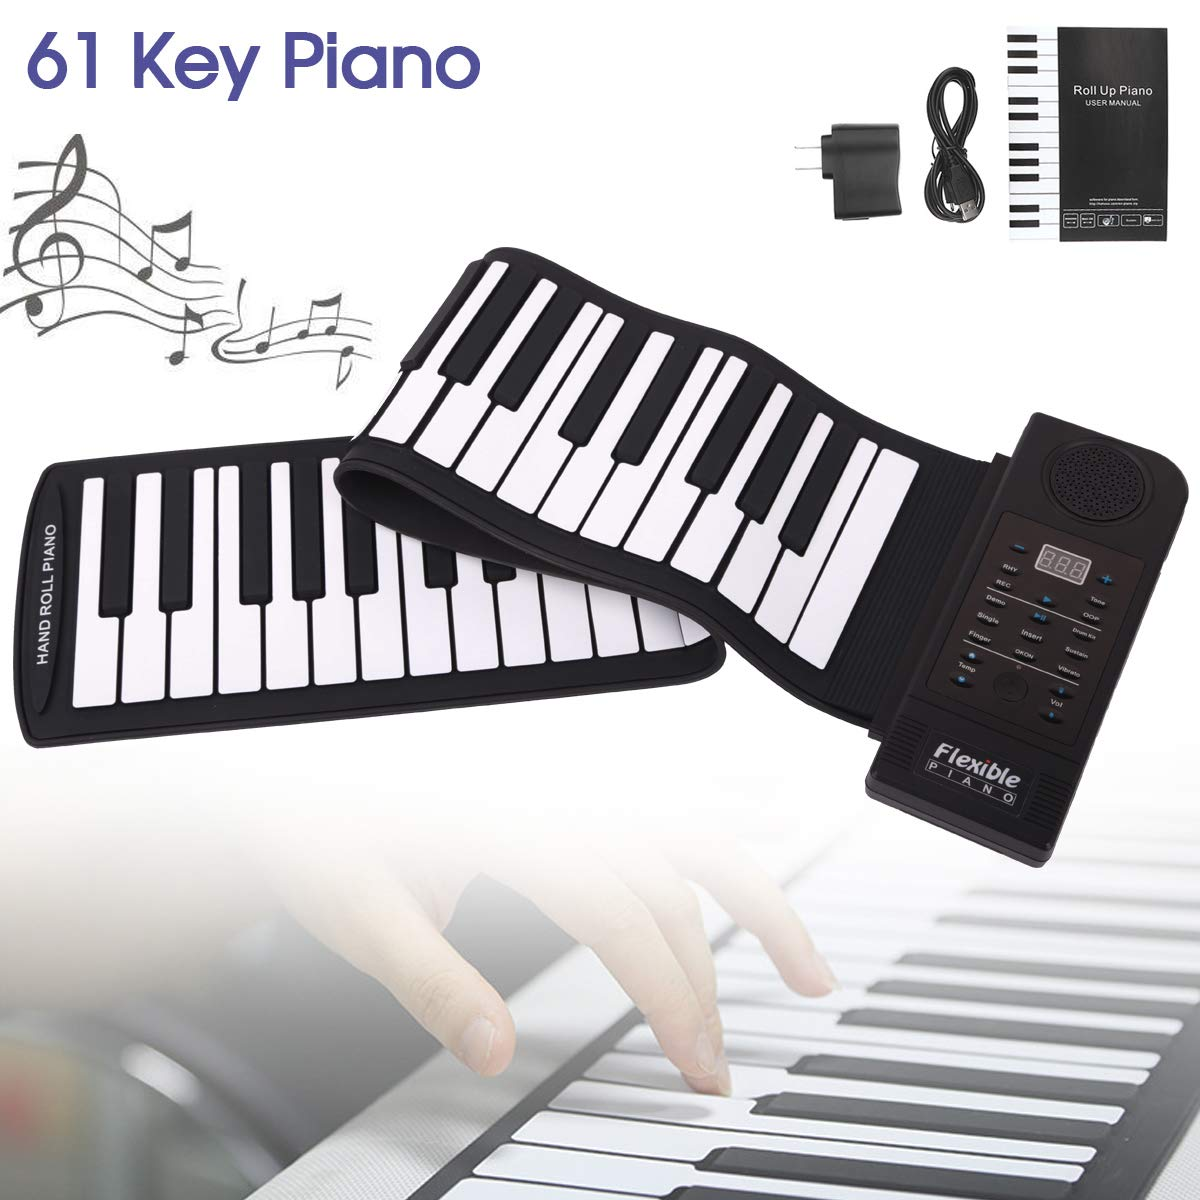 OriGlam Portable Roll Up Piano, Digital Electronic Piano Keyboard, 61 Keys Soft Silicone Flexible Foldable Keyboard, Built-in Speaker, Supports USB MIDI Output, Music Gifts for Women Men Kids